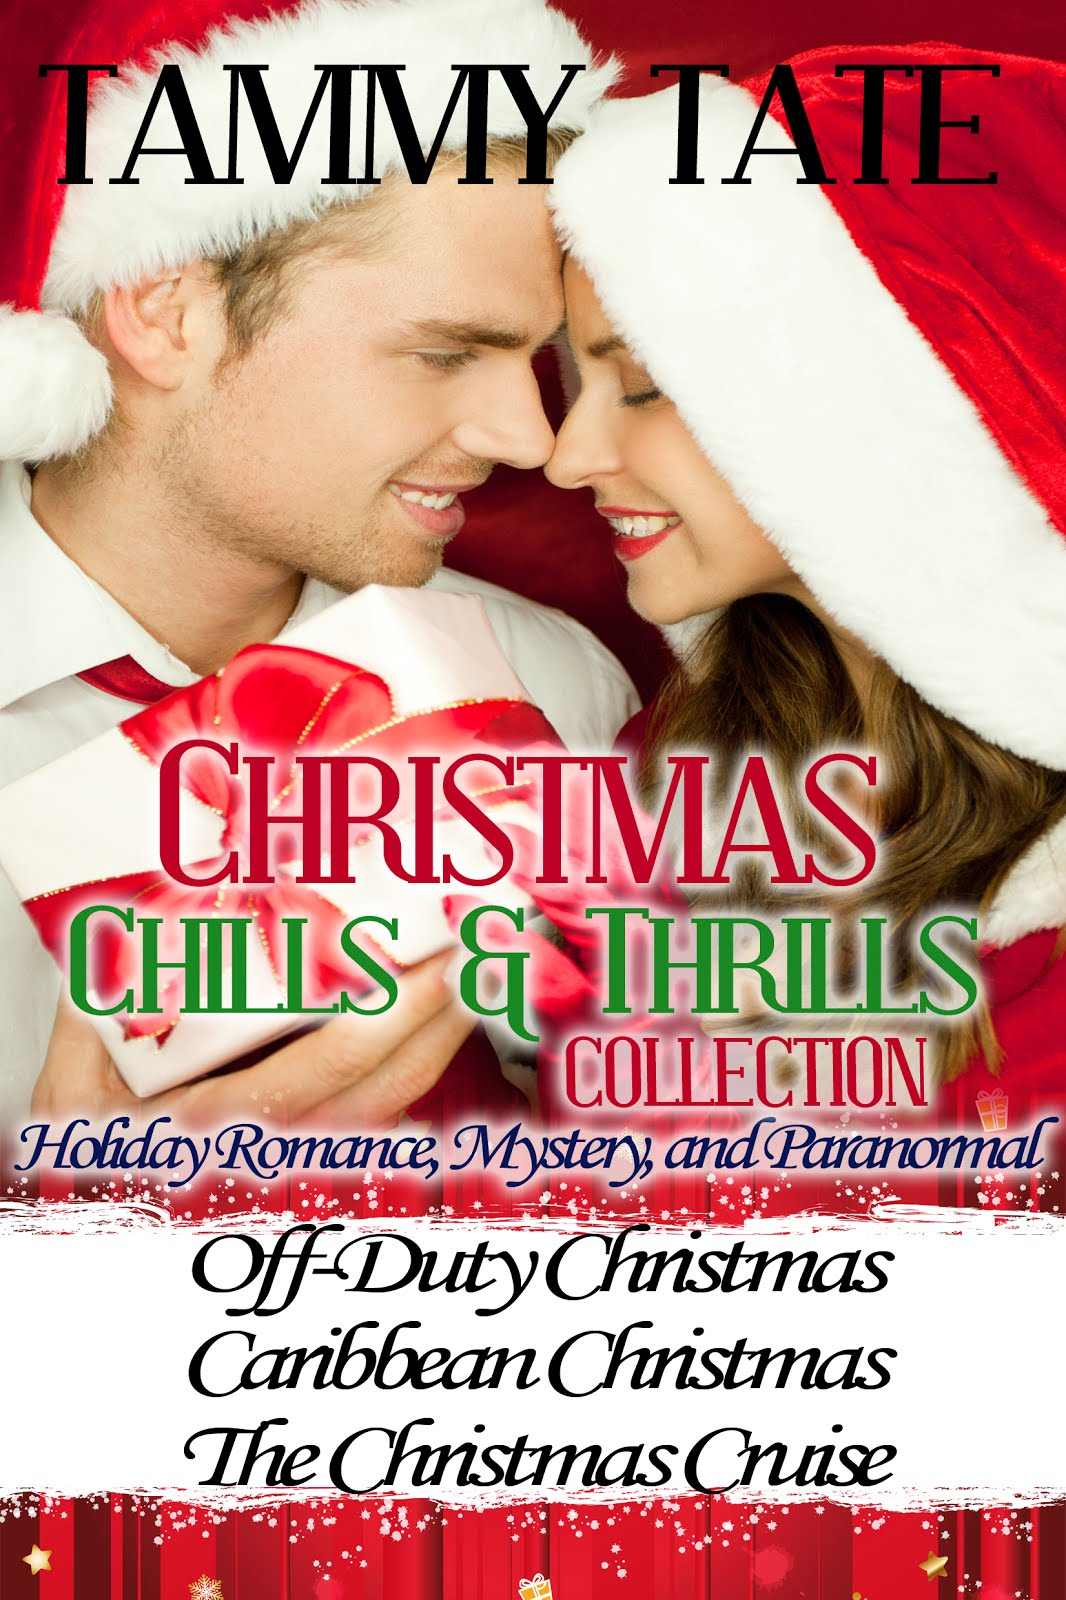 Christmas Chills & Thrills collection (Off-Duty, Caribbean Xmas, Xmas Cruise)